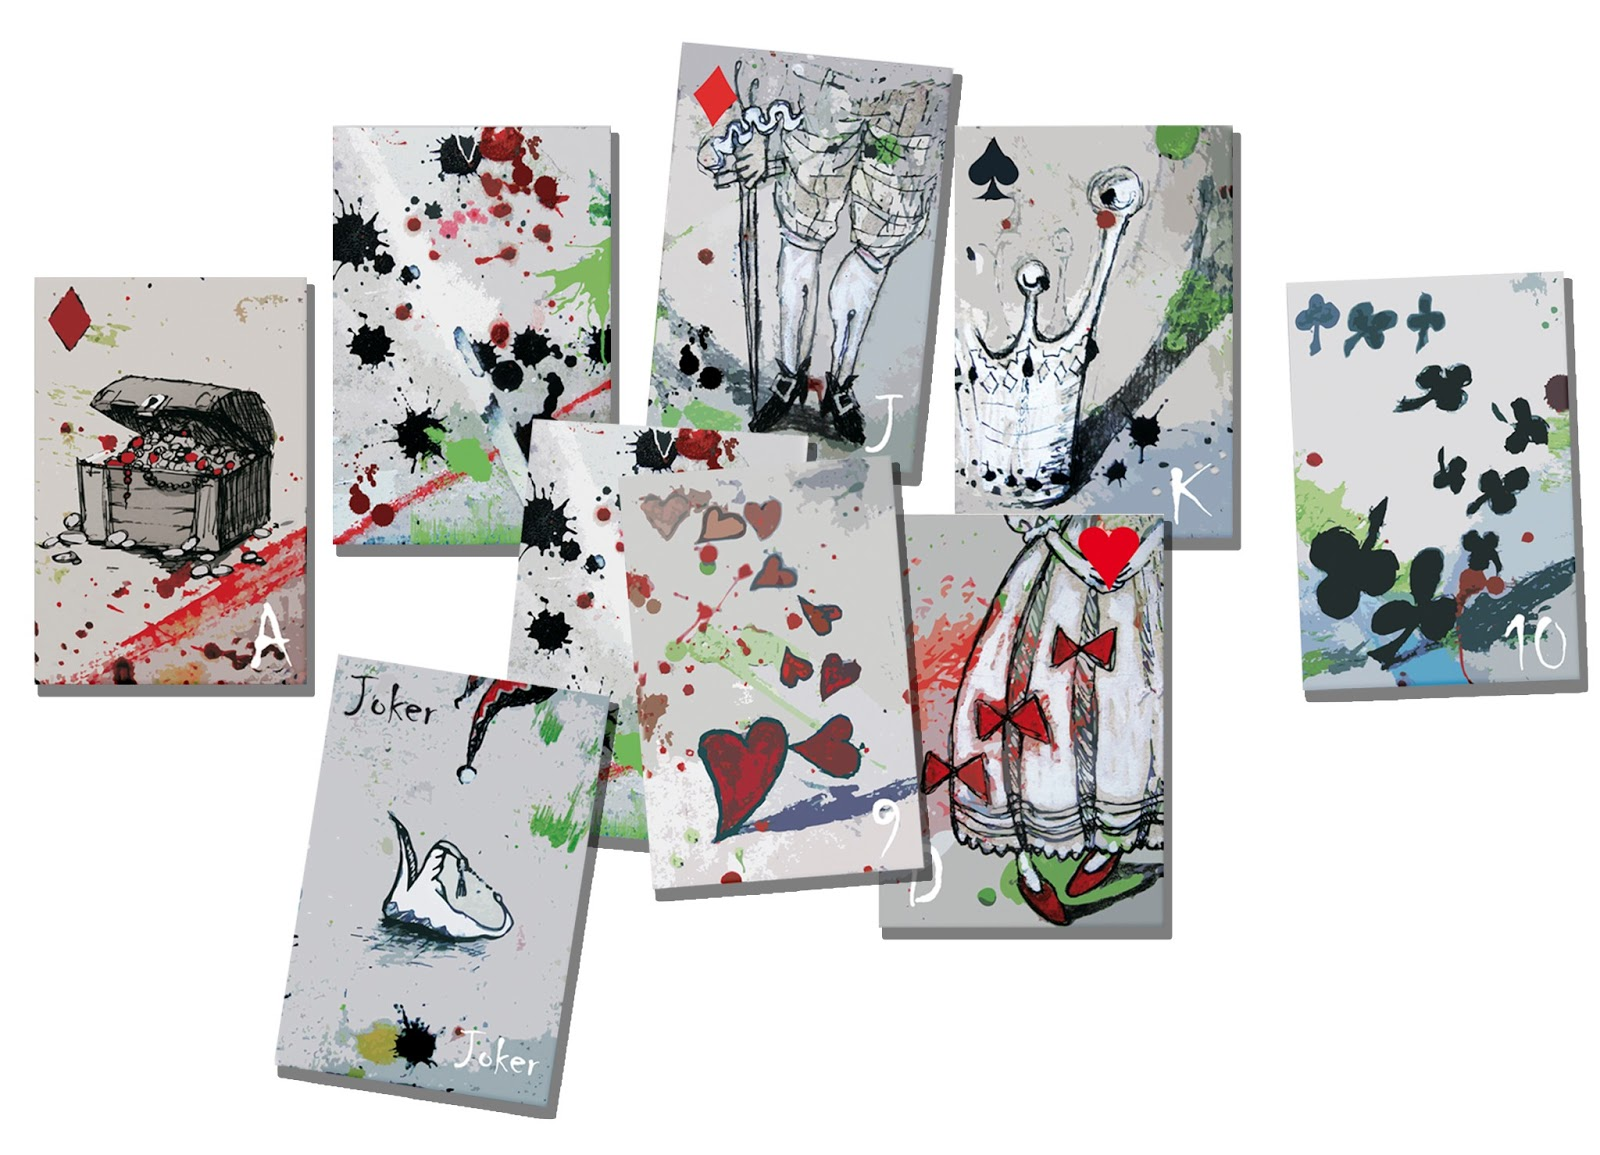 projekt kart do gry Katarzyna Urbaniak grafika rysunek ilustracja playing cards creative projects draw sketches illustration